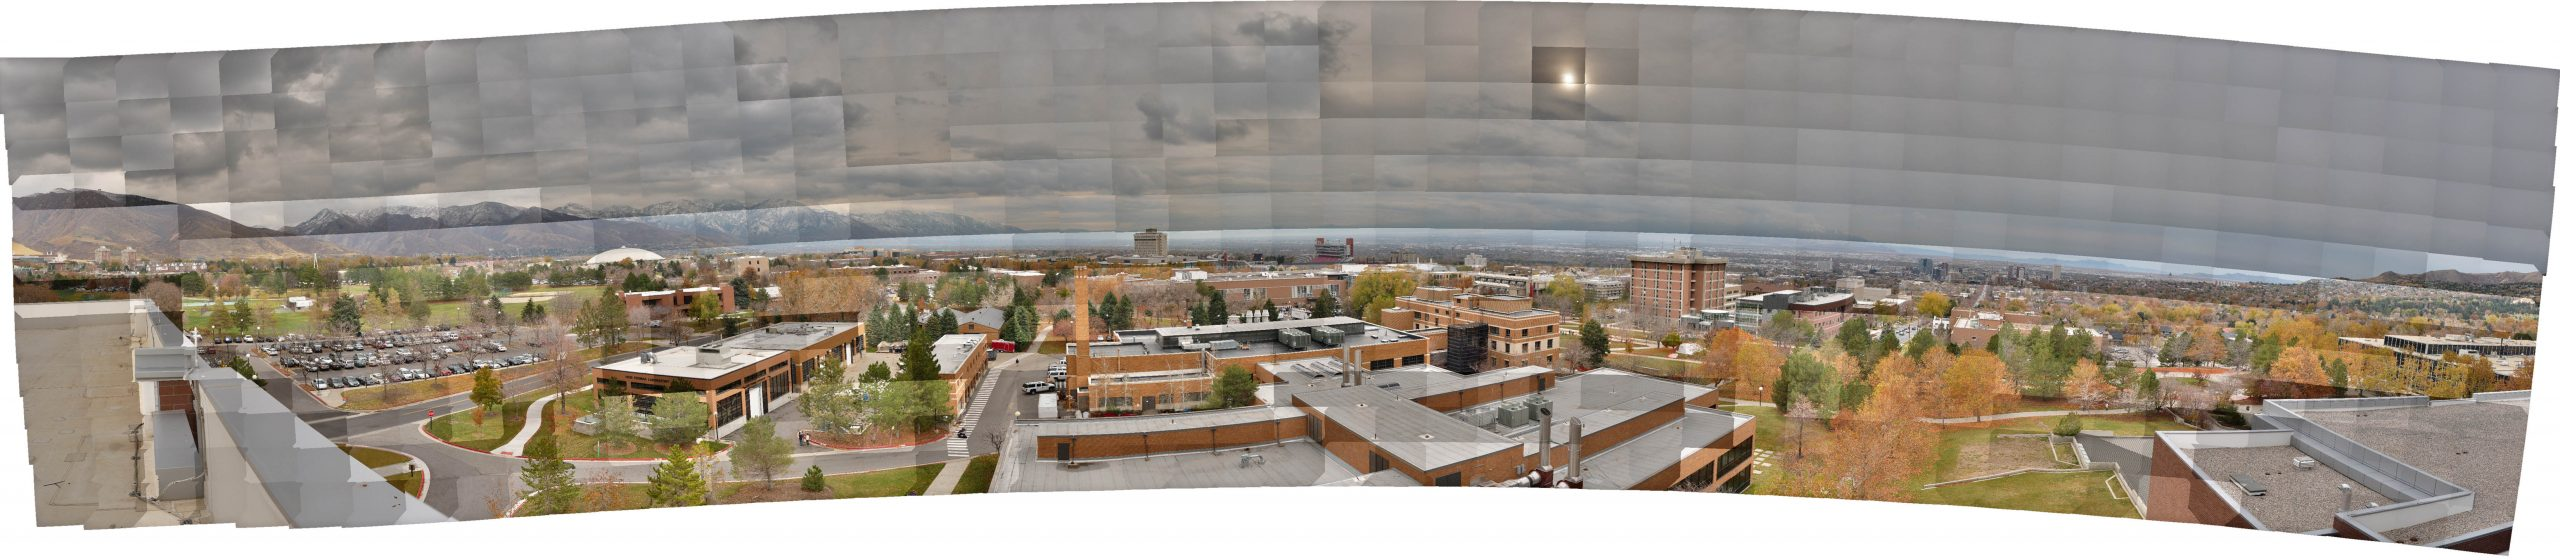 This panoramic mosaic of the Salt Lake Valley was taken by a camera mounted on a robotic panning device atop a University of Utah building. It consists of more than 600 separate photographs that contain a total of 3.27 gigapixels (3.27 billion pixels) of image data. The seams between individual photos are readily apparent, as are differences in light exposure. To edit the photos into a single, seamless, evenly exposed panorama would take hours using normal methods to edit such huge images. The mosaic has been reduced to about 1 megabyte in this image. See next image.